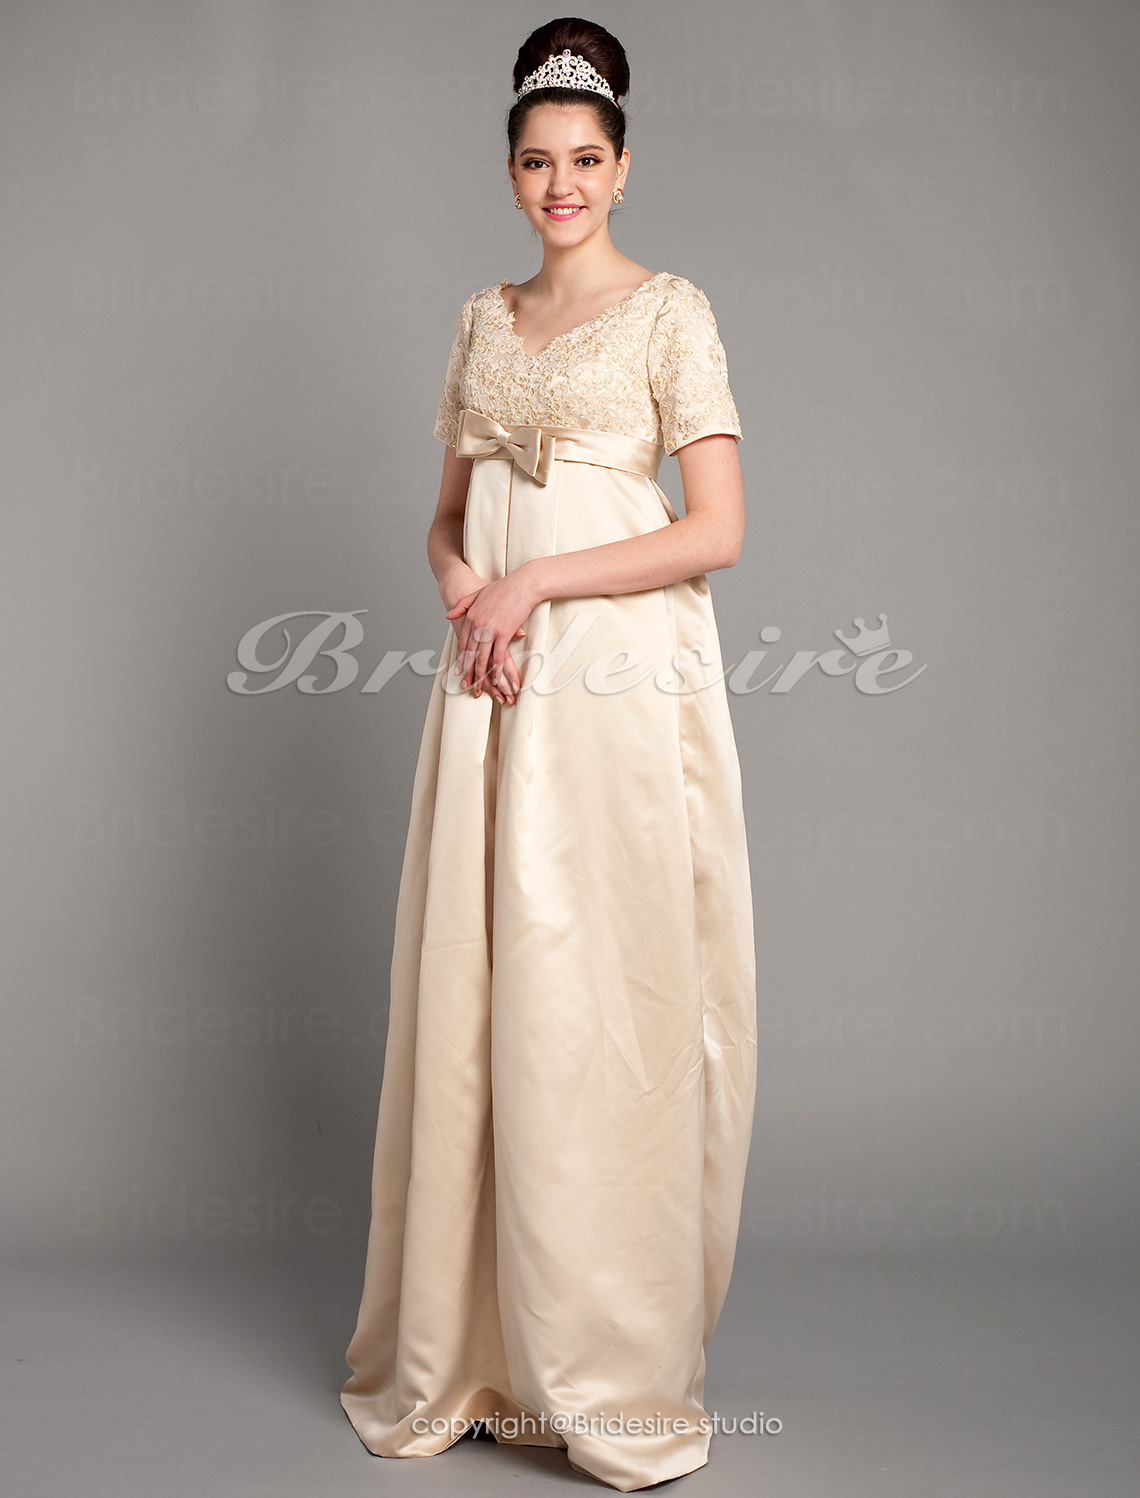 Sheath / Column Satin V-neck Floor-length Empire Maternity Wedding Dress